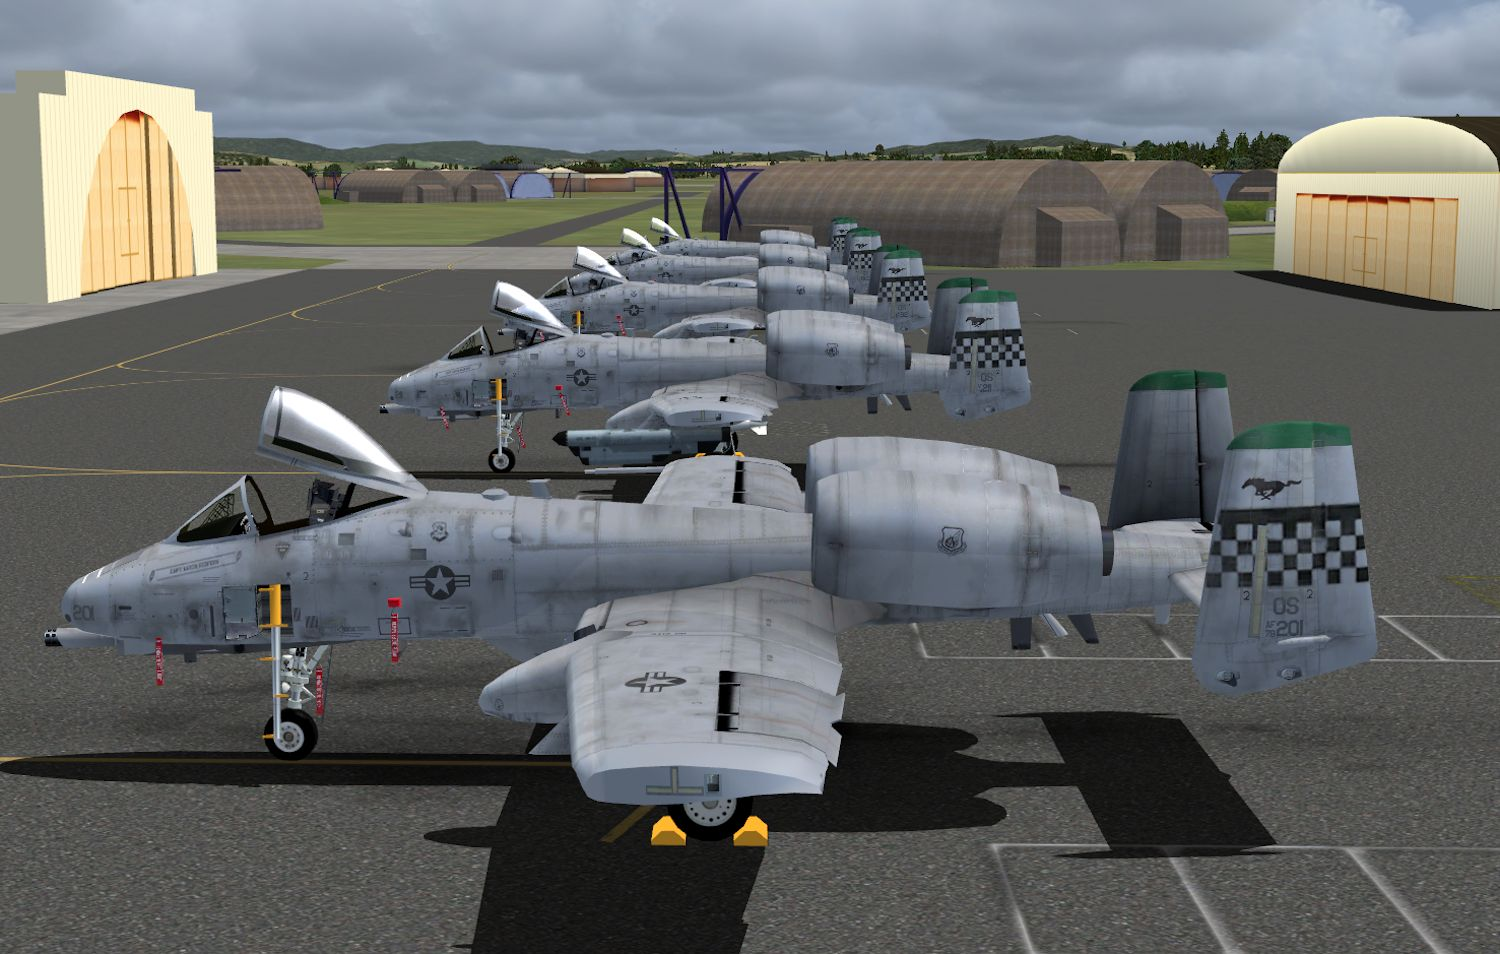 Convert Fs9 Traffic Files To Fsx Planes Downloads - polvvn